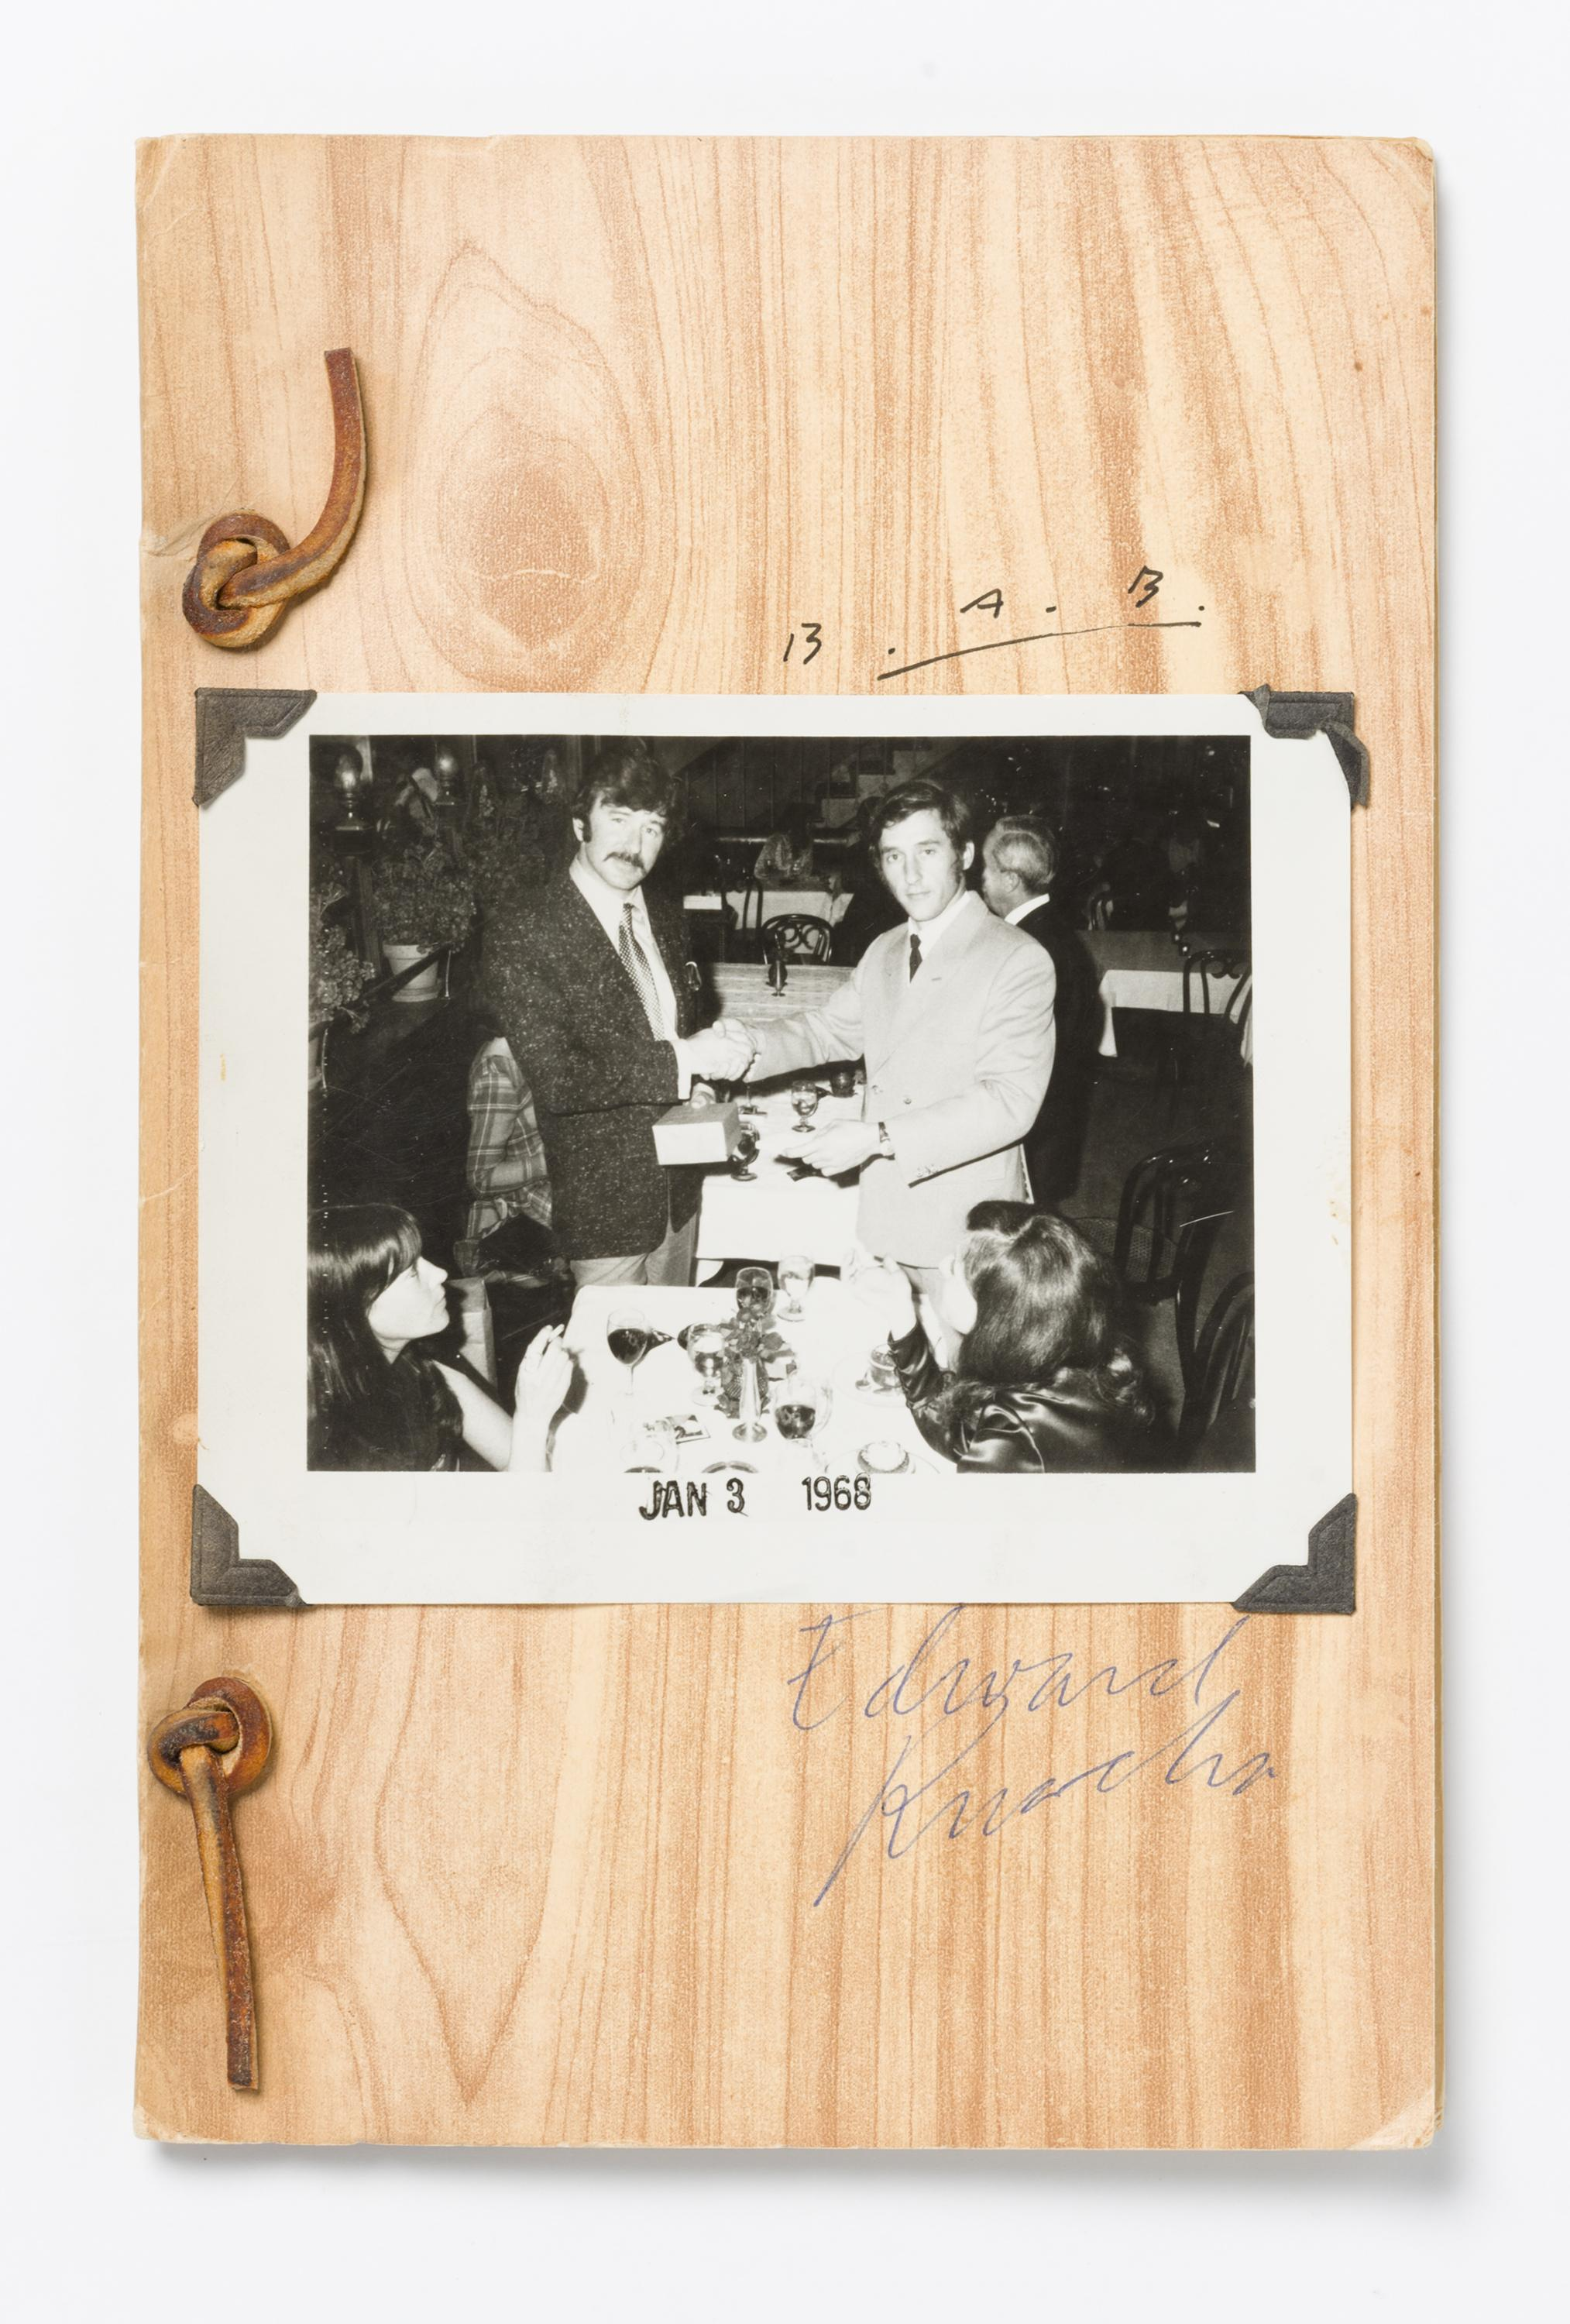 A black-and-white photograph of two men shaking hands is mounted to a light-colored piece of wood.